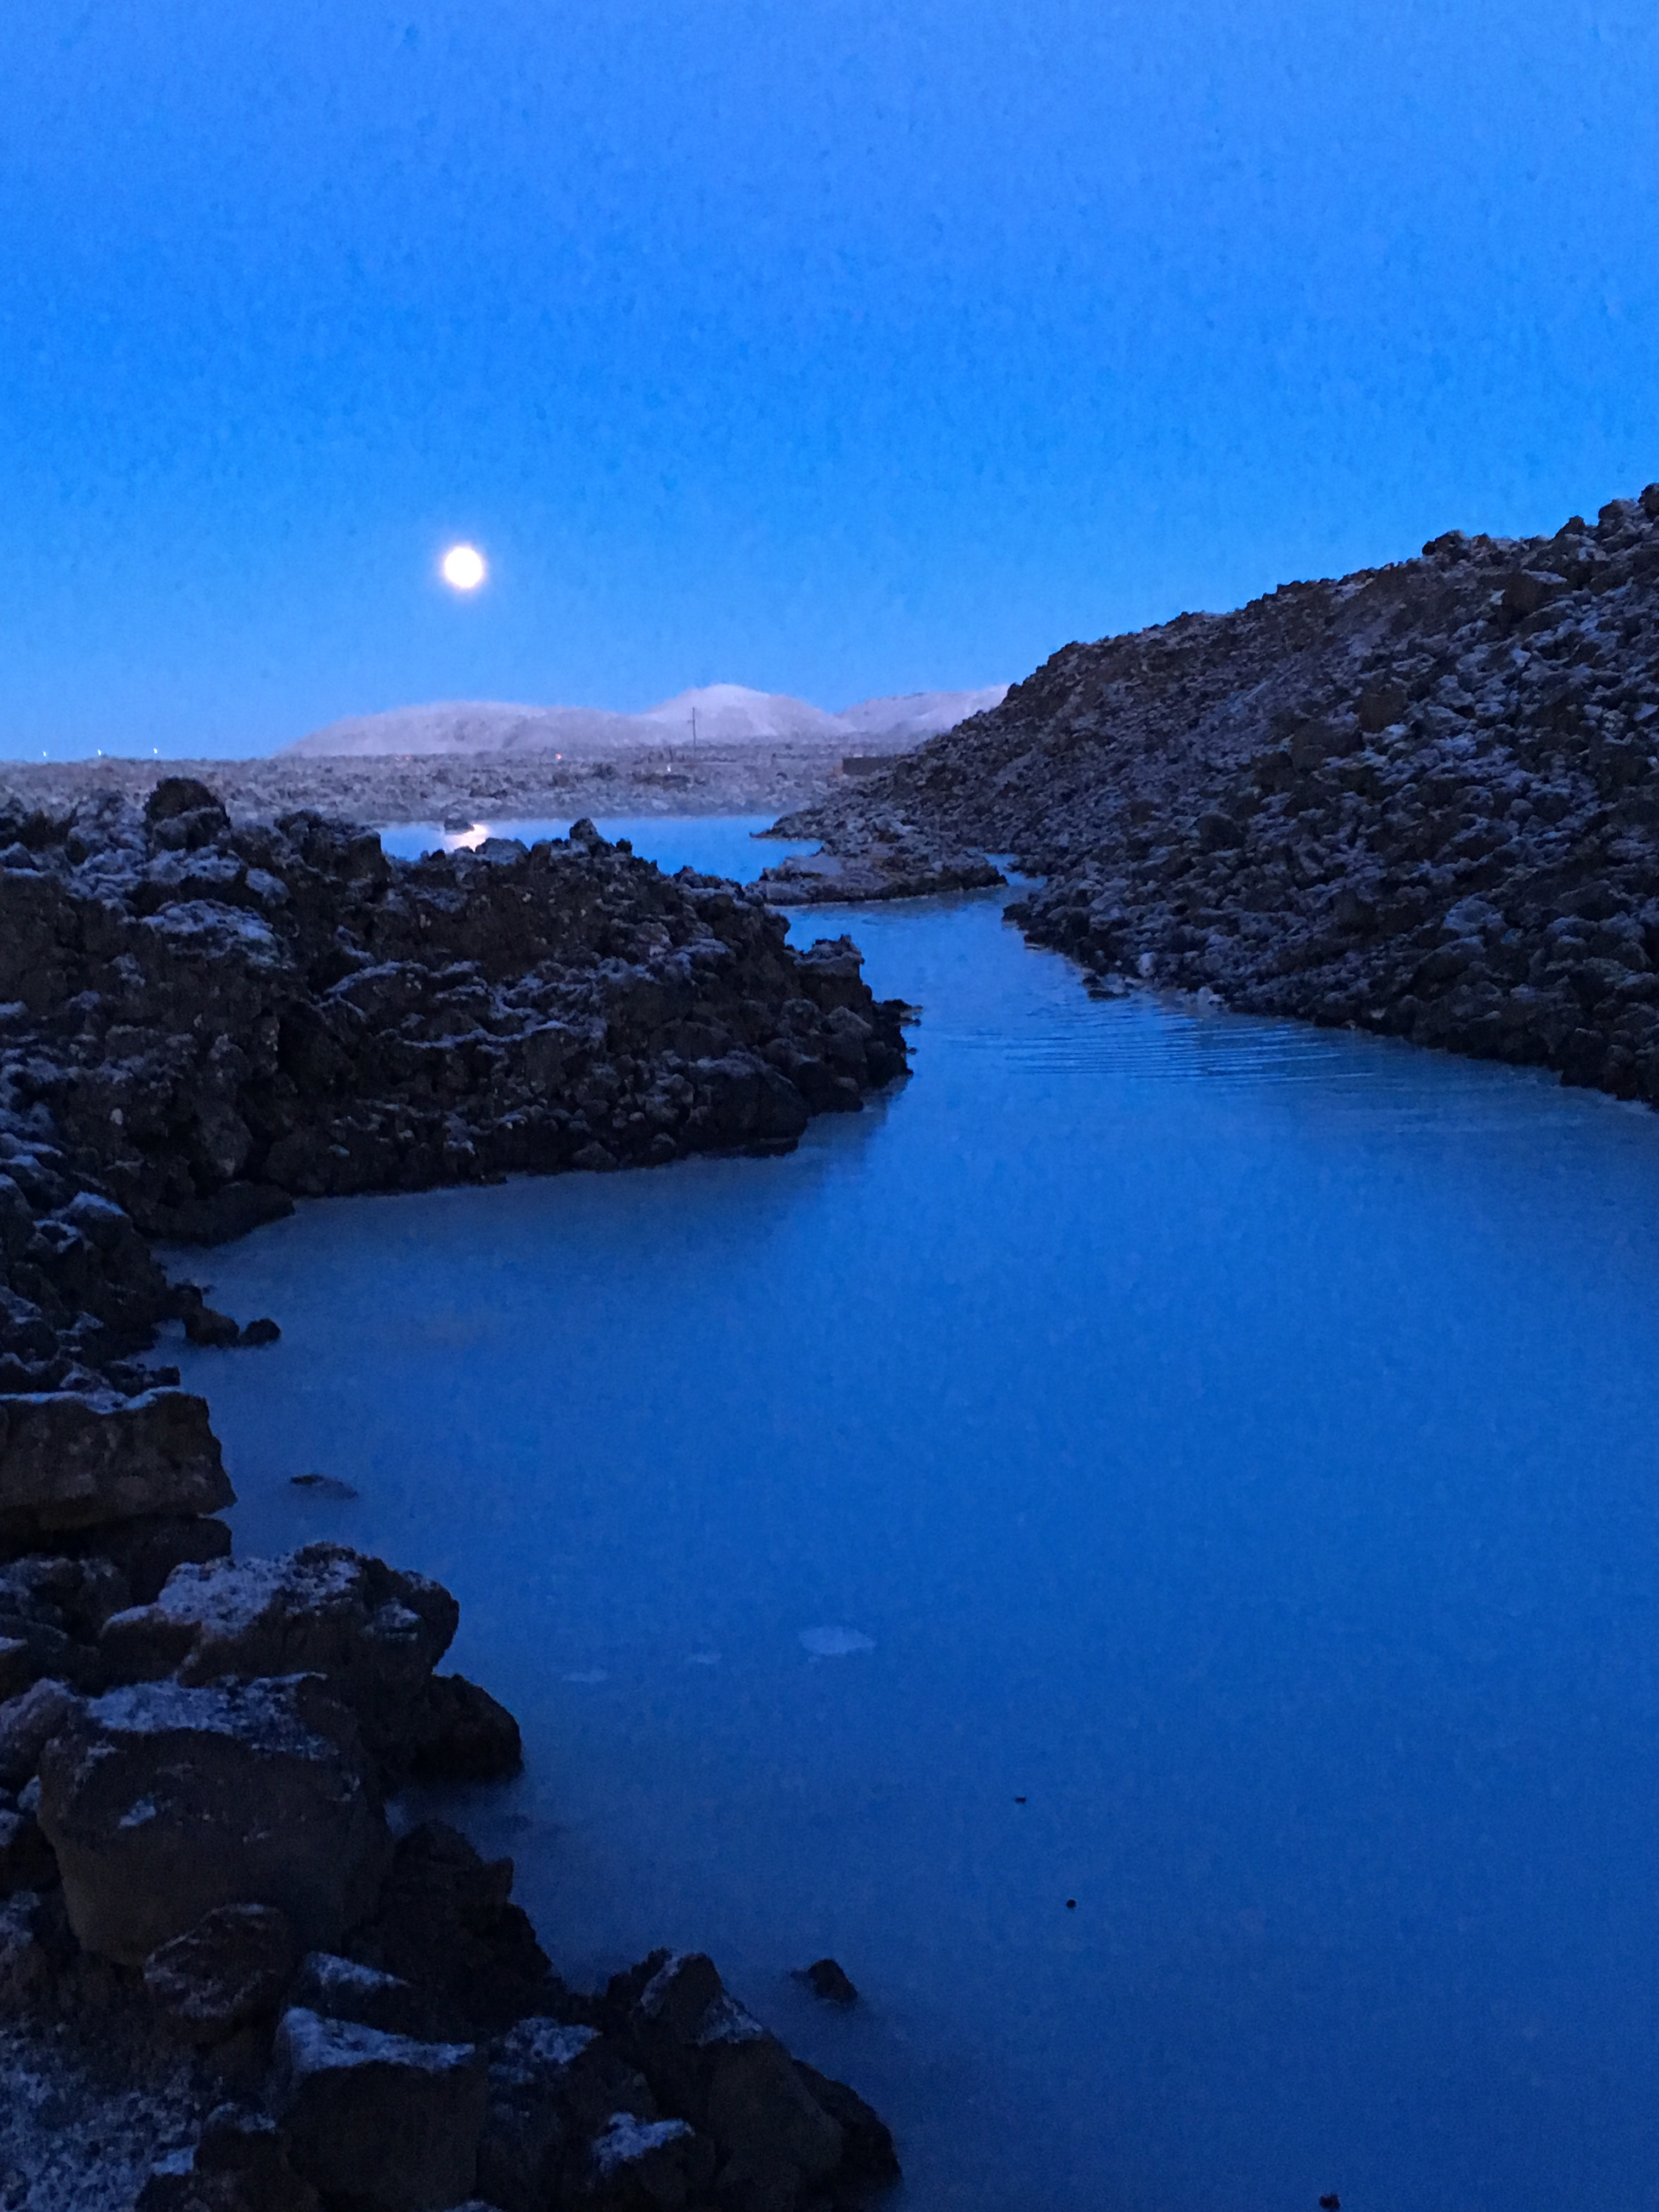 The Blue Lagoon at night